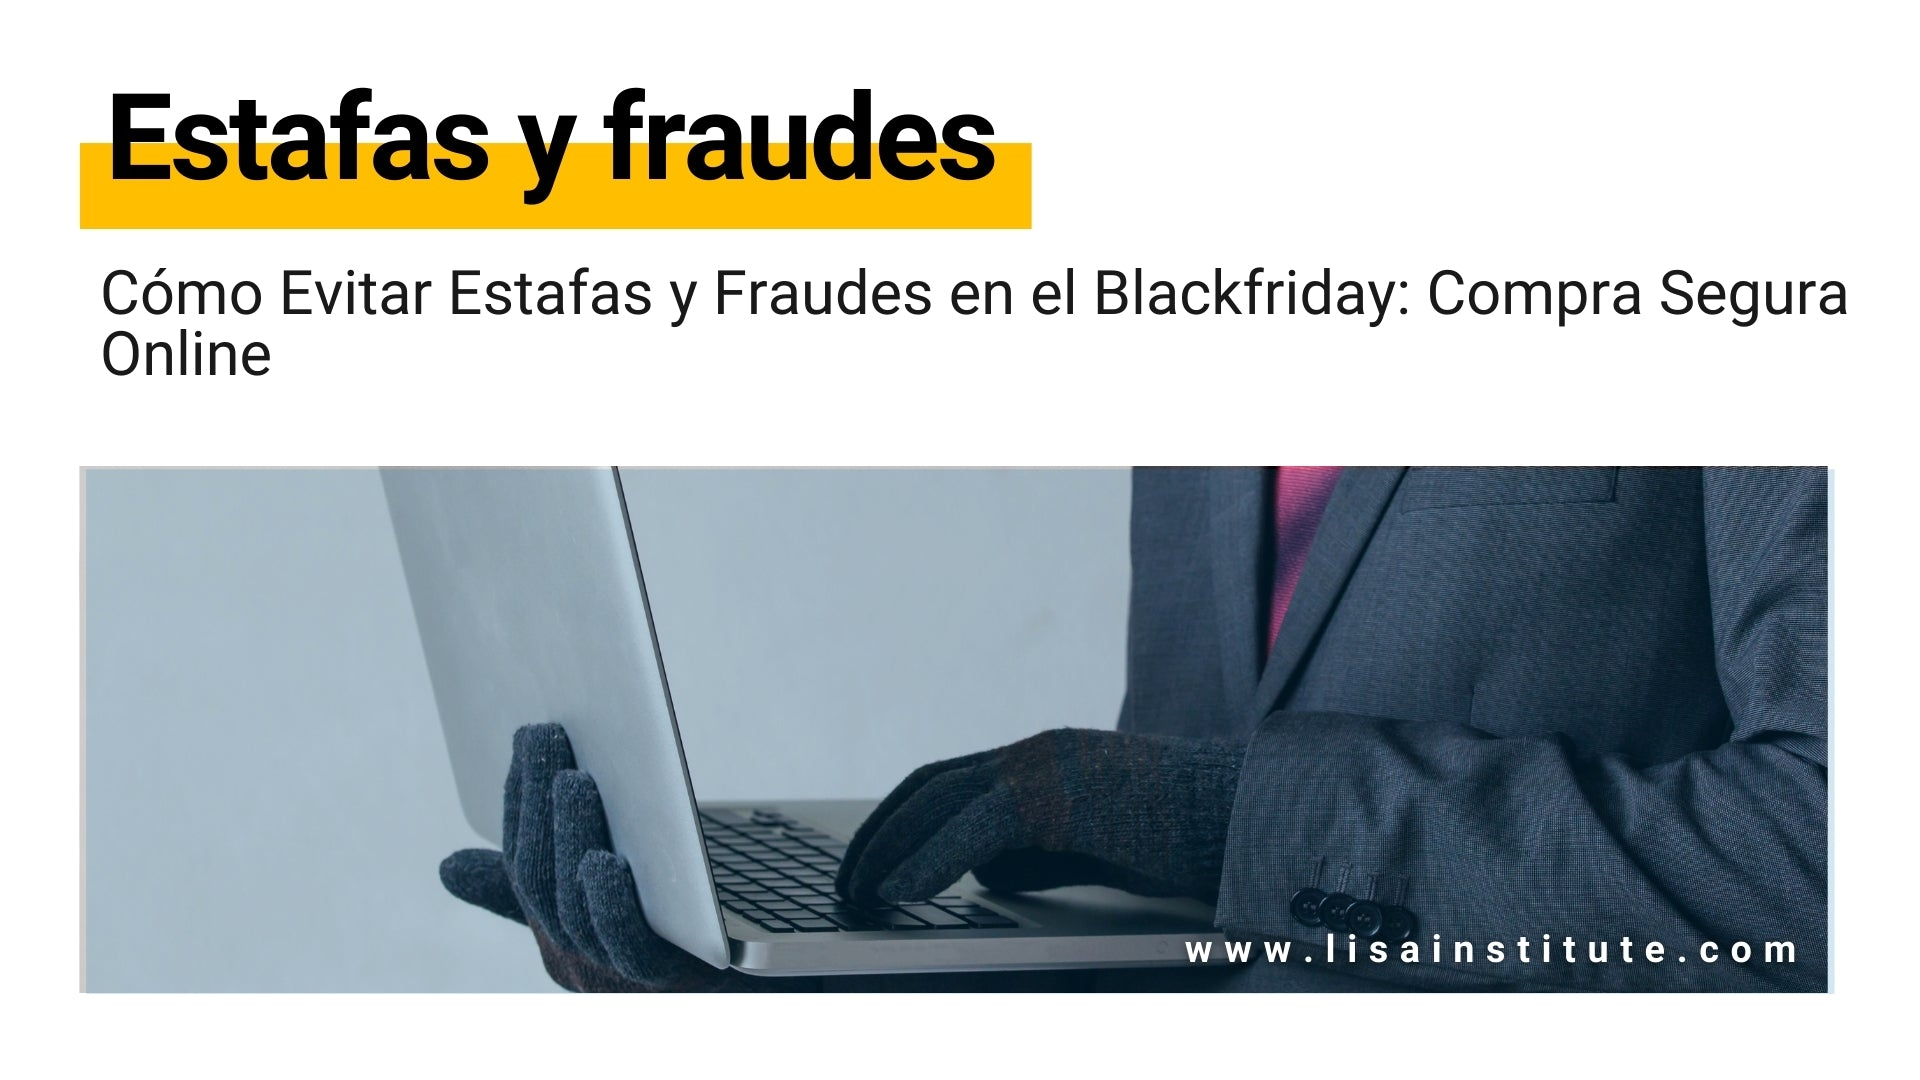 Cómo Evitar Estafas y Fraudes en el Blackfriday Compra Segura Online - LISA Institute